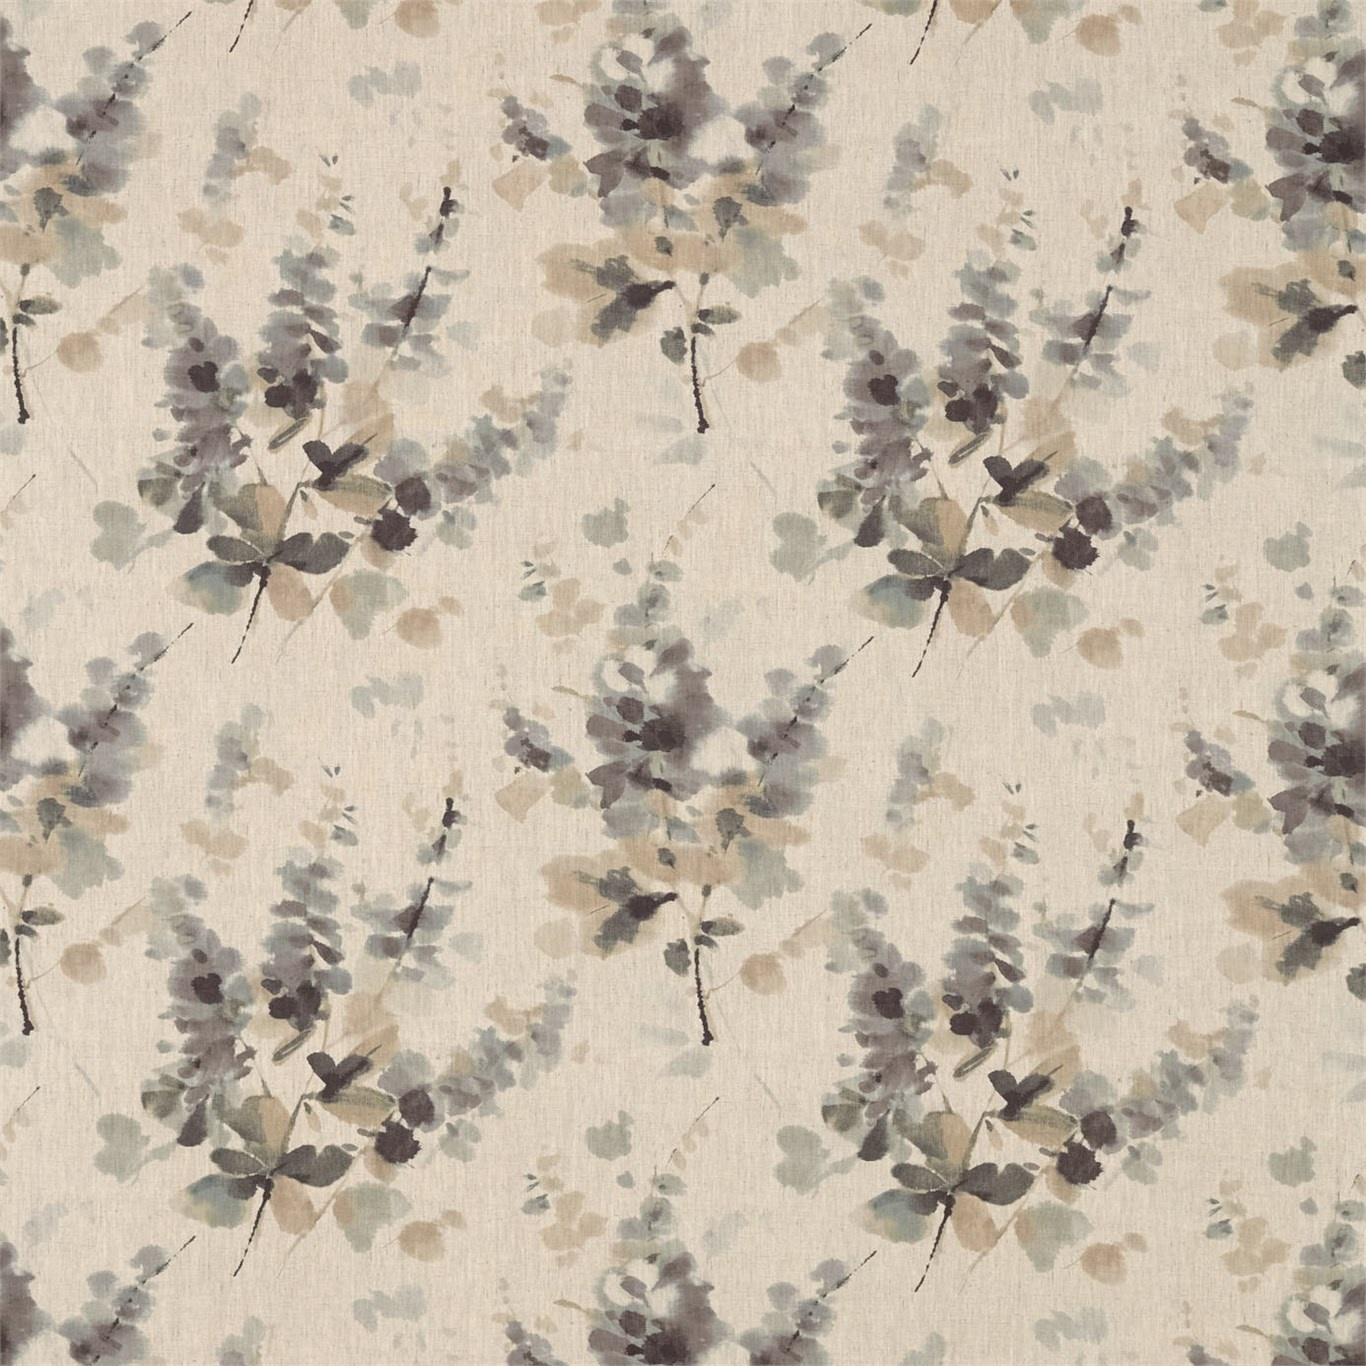 Image of Sanderson Delphiniums Charcoal Fabric 226291